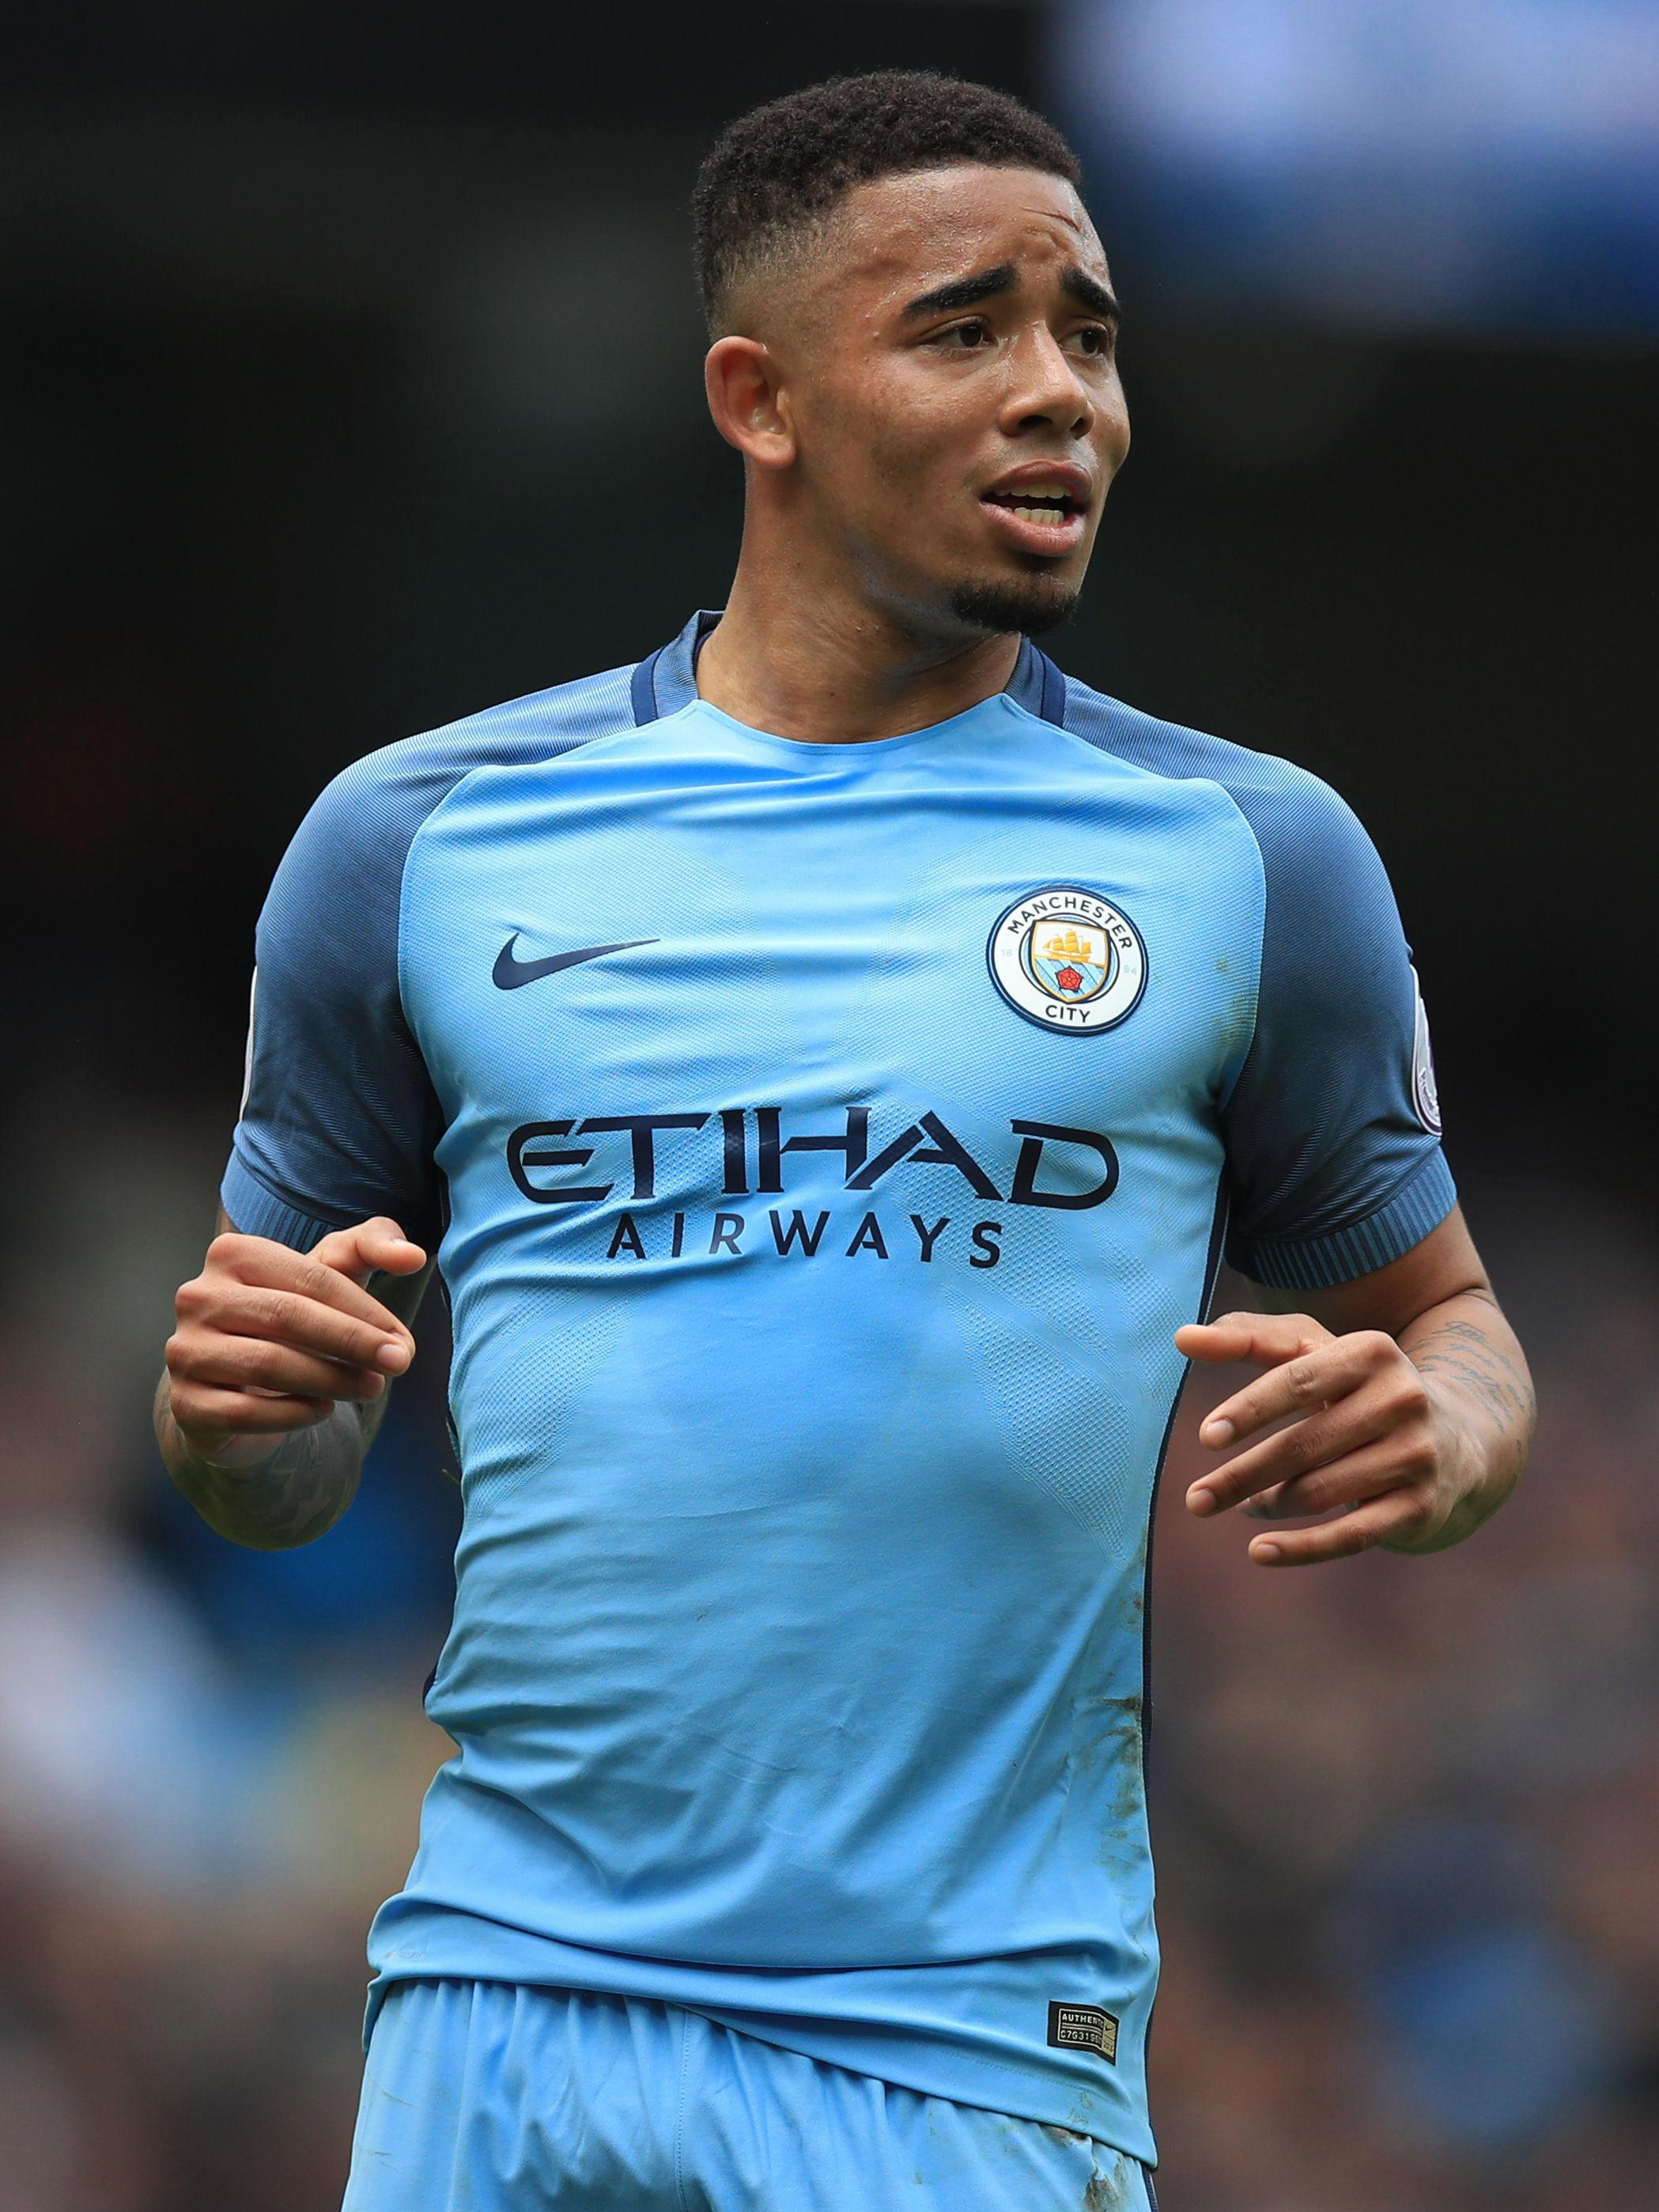 The arrival of Gabriel Jesus in January sparked rumours of Agueros exit